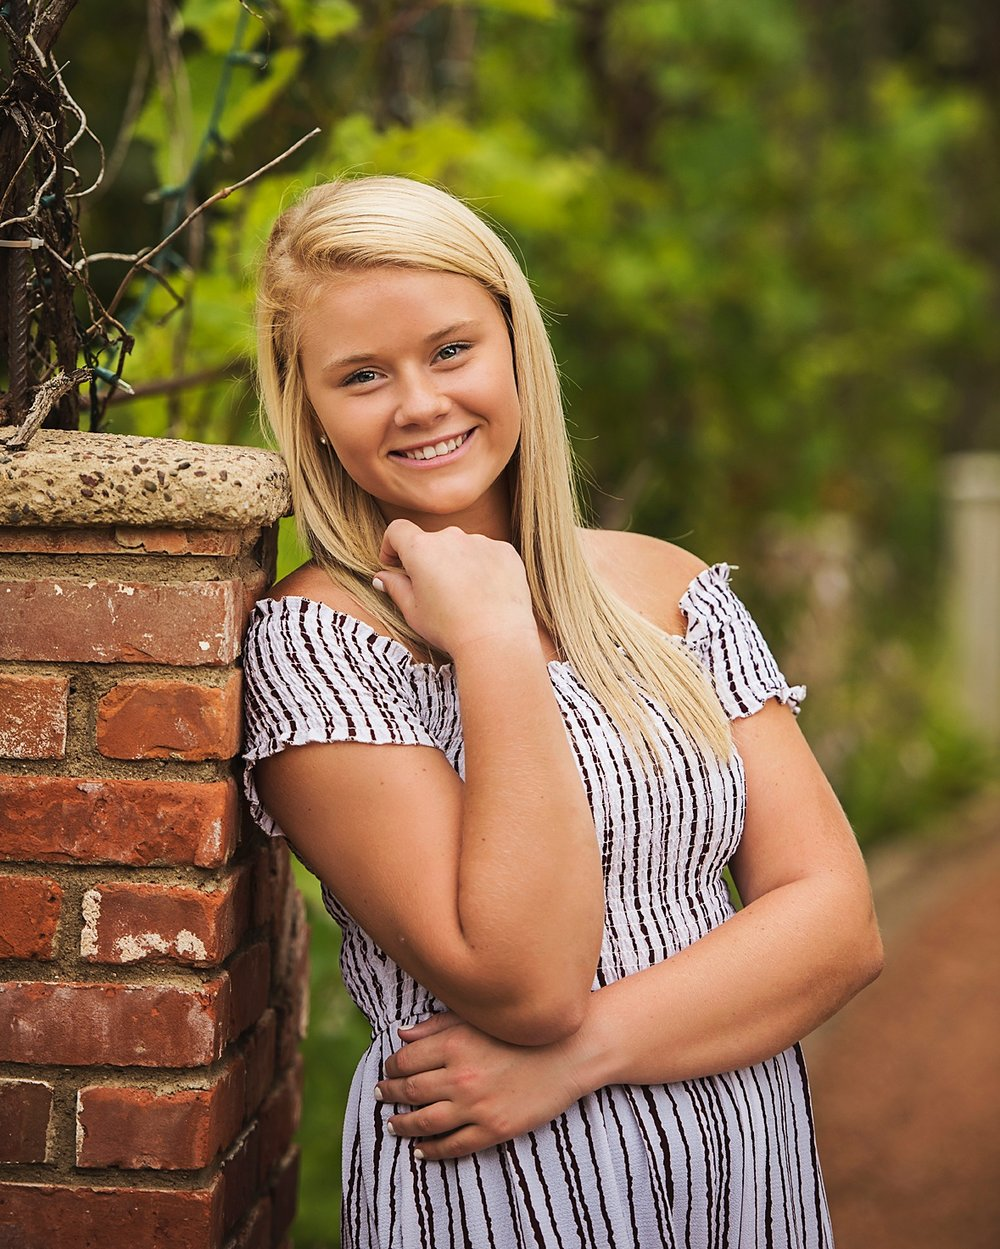 BAYLIEGH //Class of 2019 - Chippewa - Samantha made the entire process super easy and fun! She communicates with you from day one, when you book your session. She will help with anything and everything! If you have a question, she'll answer it. If you need suggestions, she's got them! If you need pictures done, I would highly recommend Samantha!!!